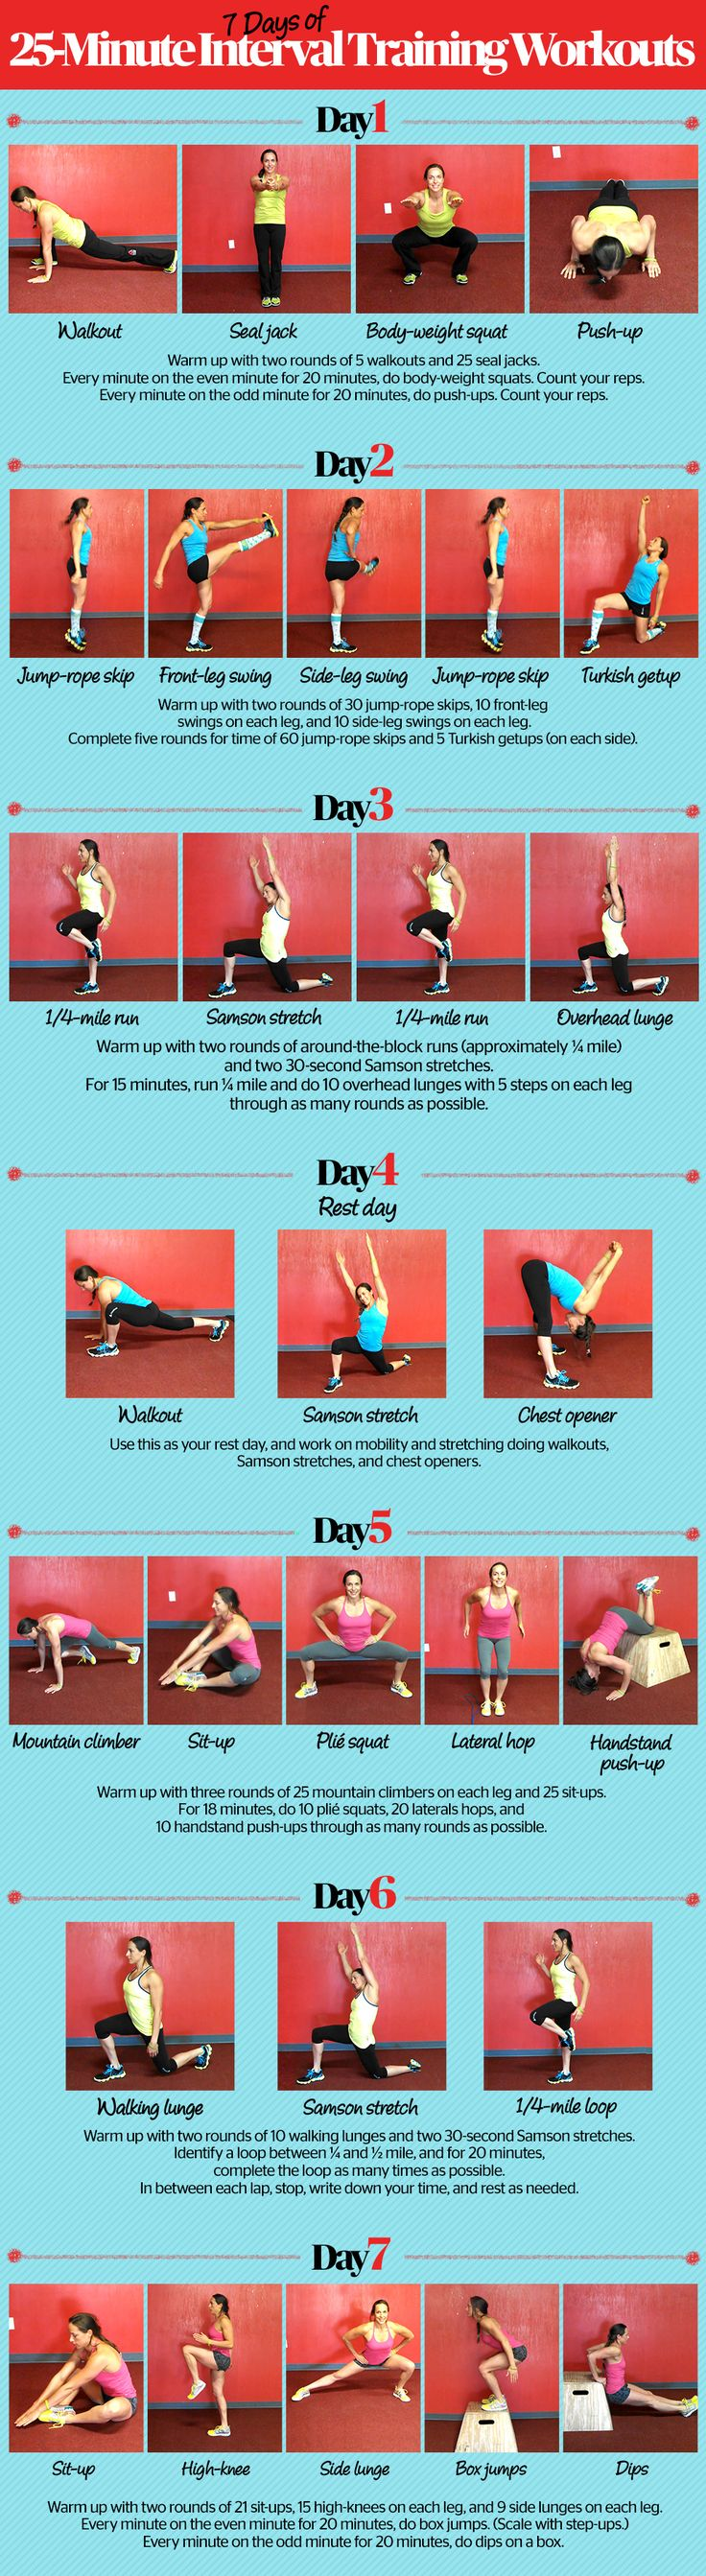 Workouts You Can Do Anywhere Transform yourself, get fit & healthy. Start your free month now!!! Cancel anytime. #fitness #workout #health #exercise videos #online fitness #gymra.com